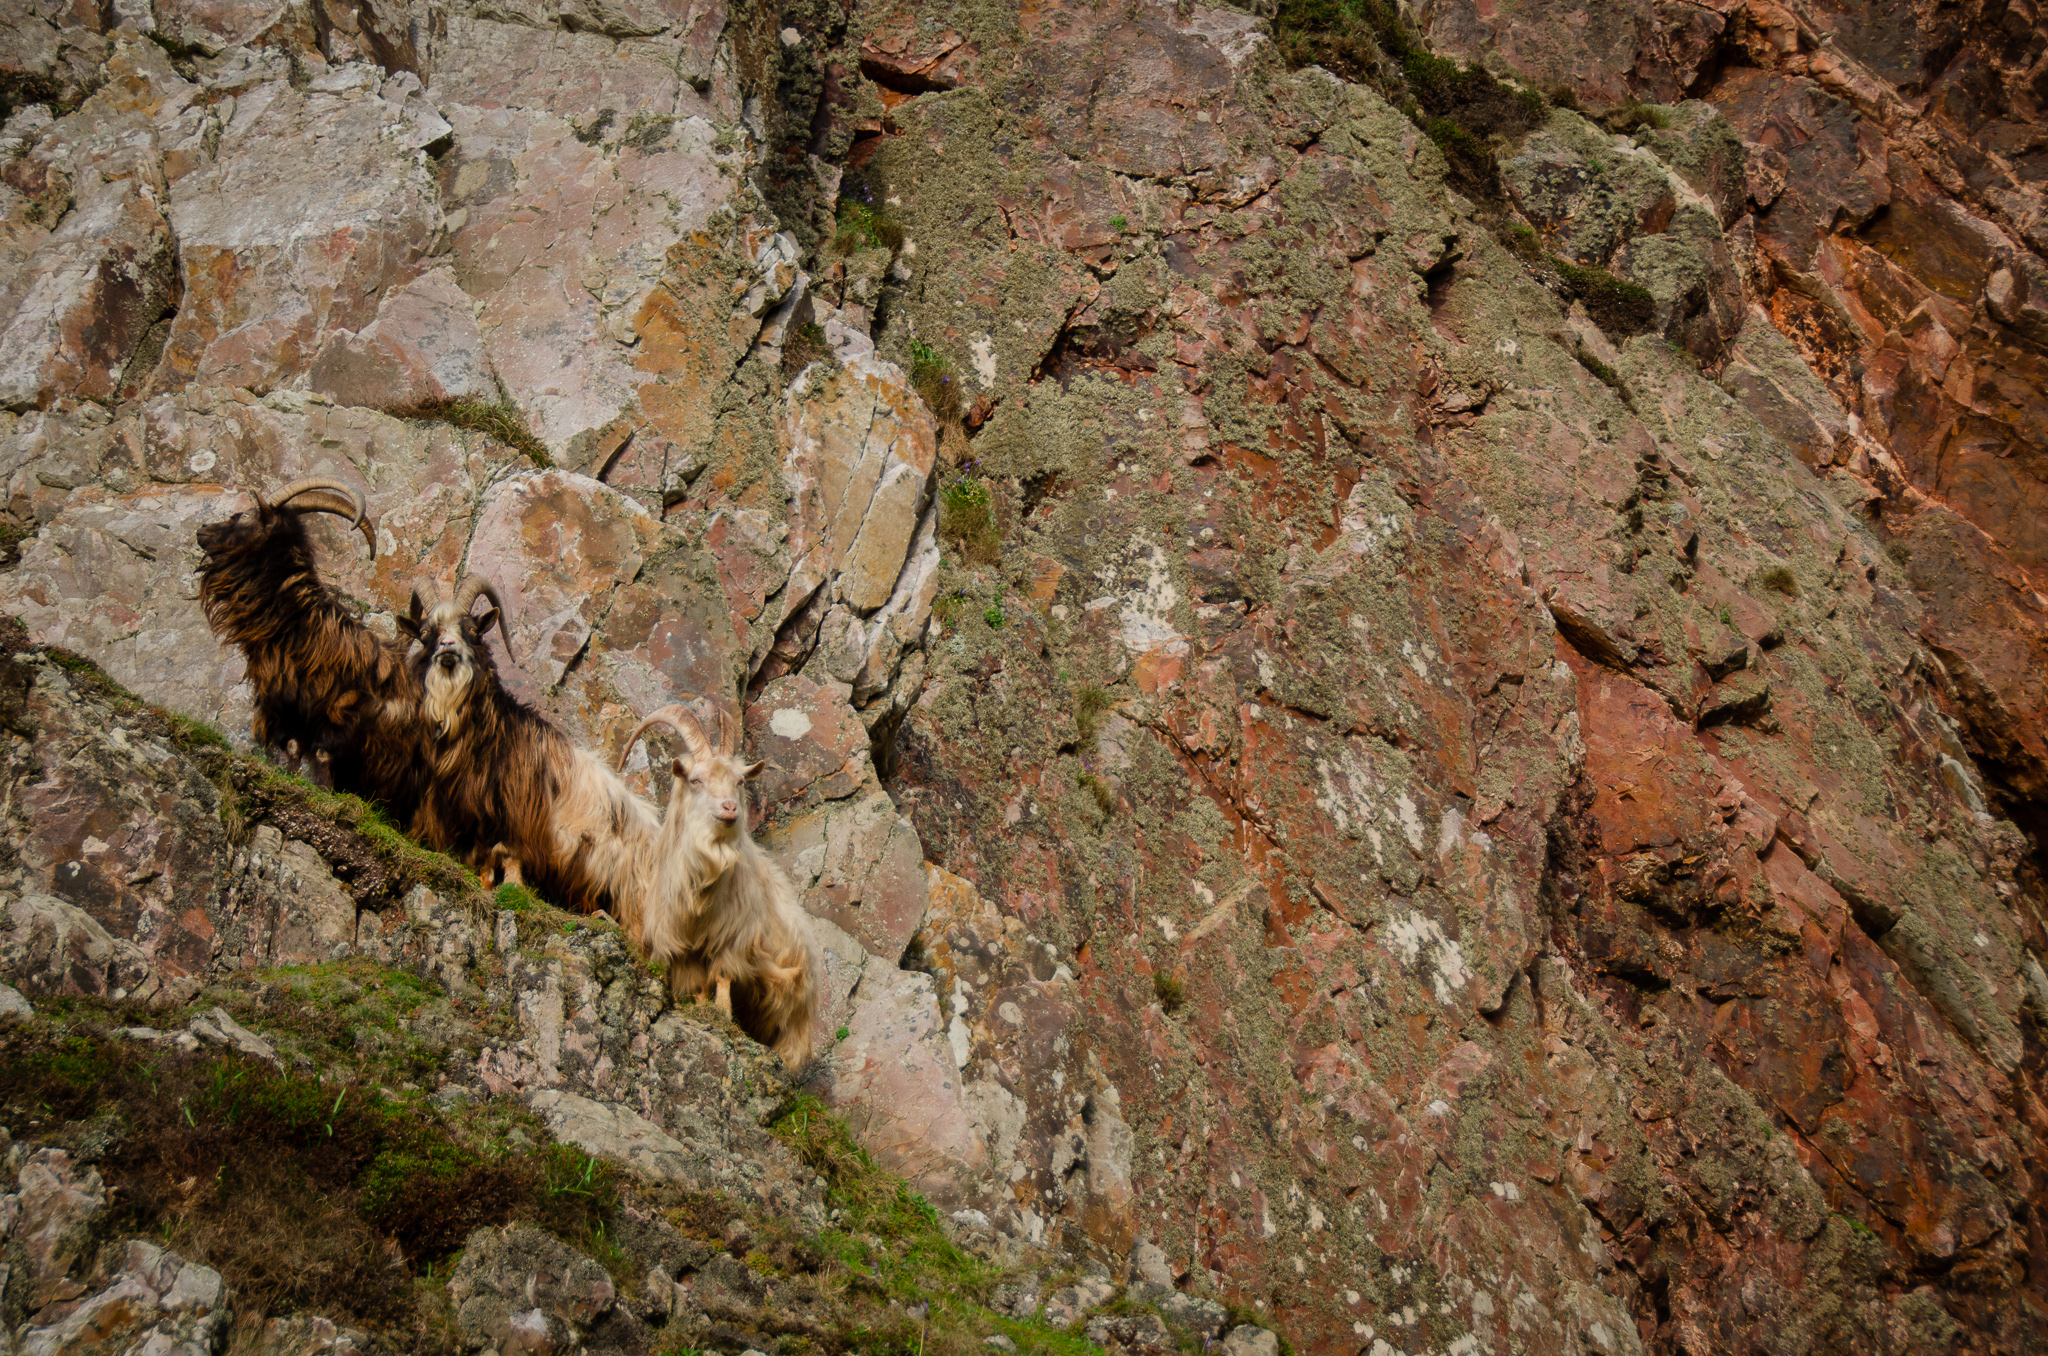 The wild goats were well camouflaged against the rocky outcrop.